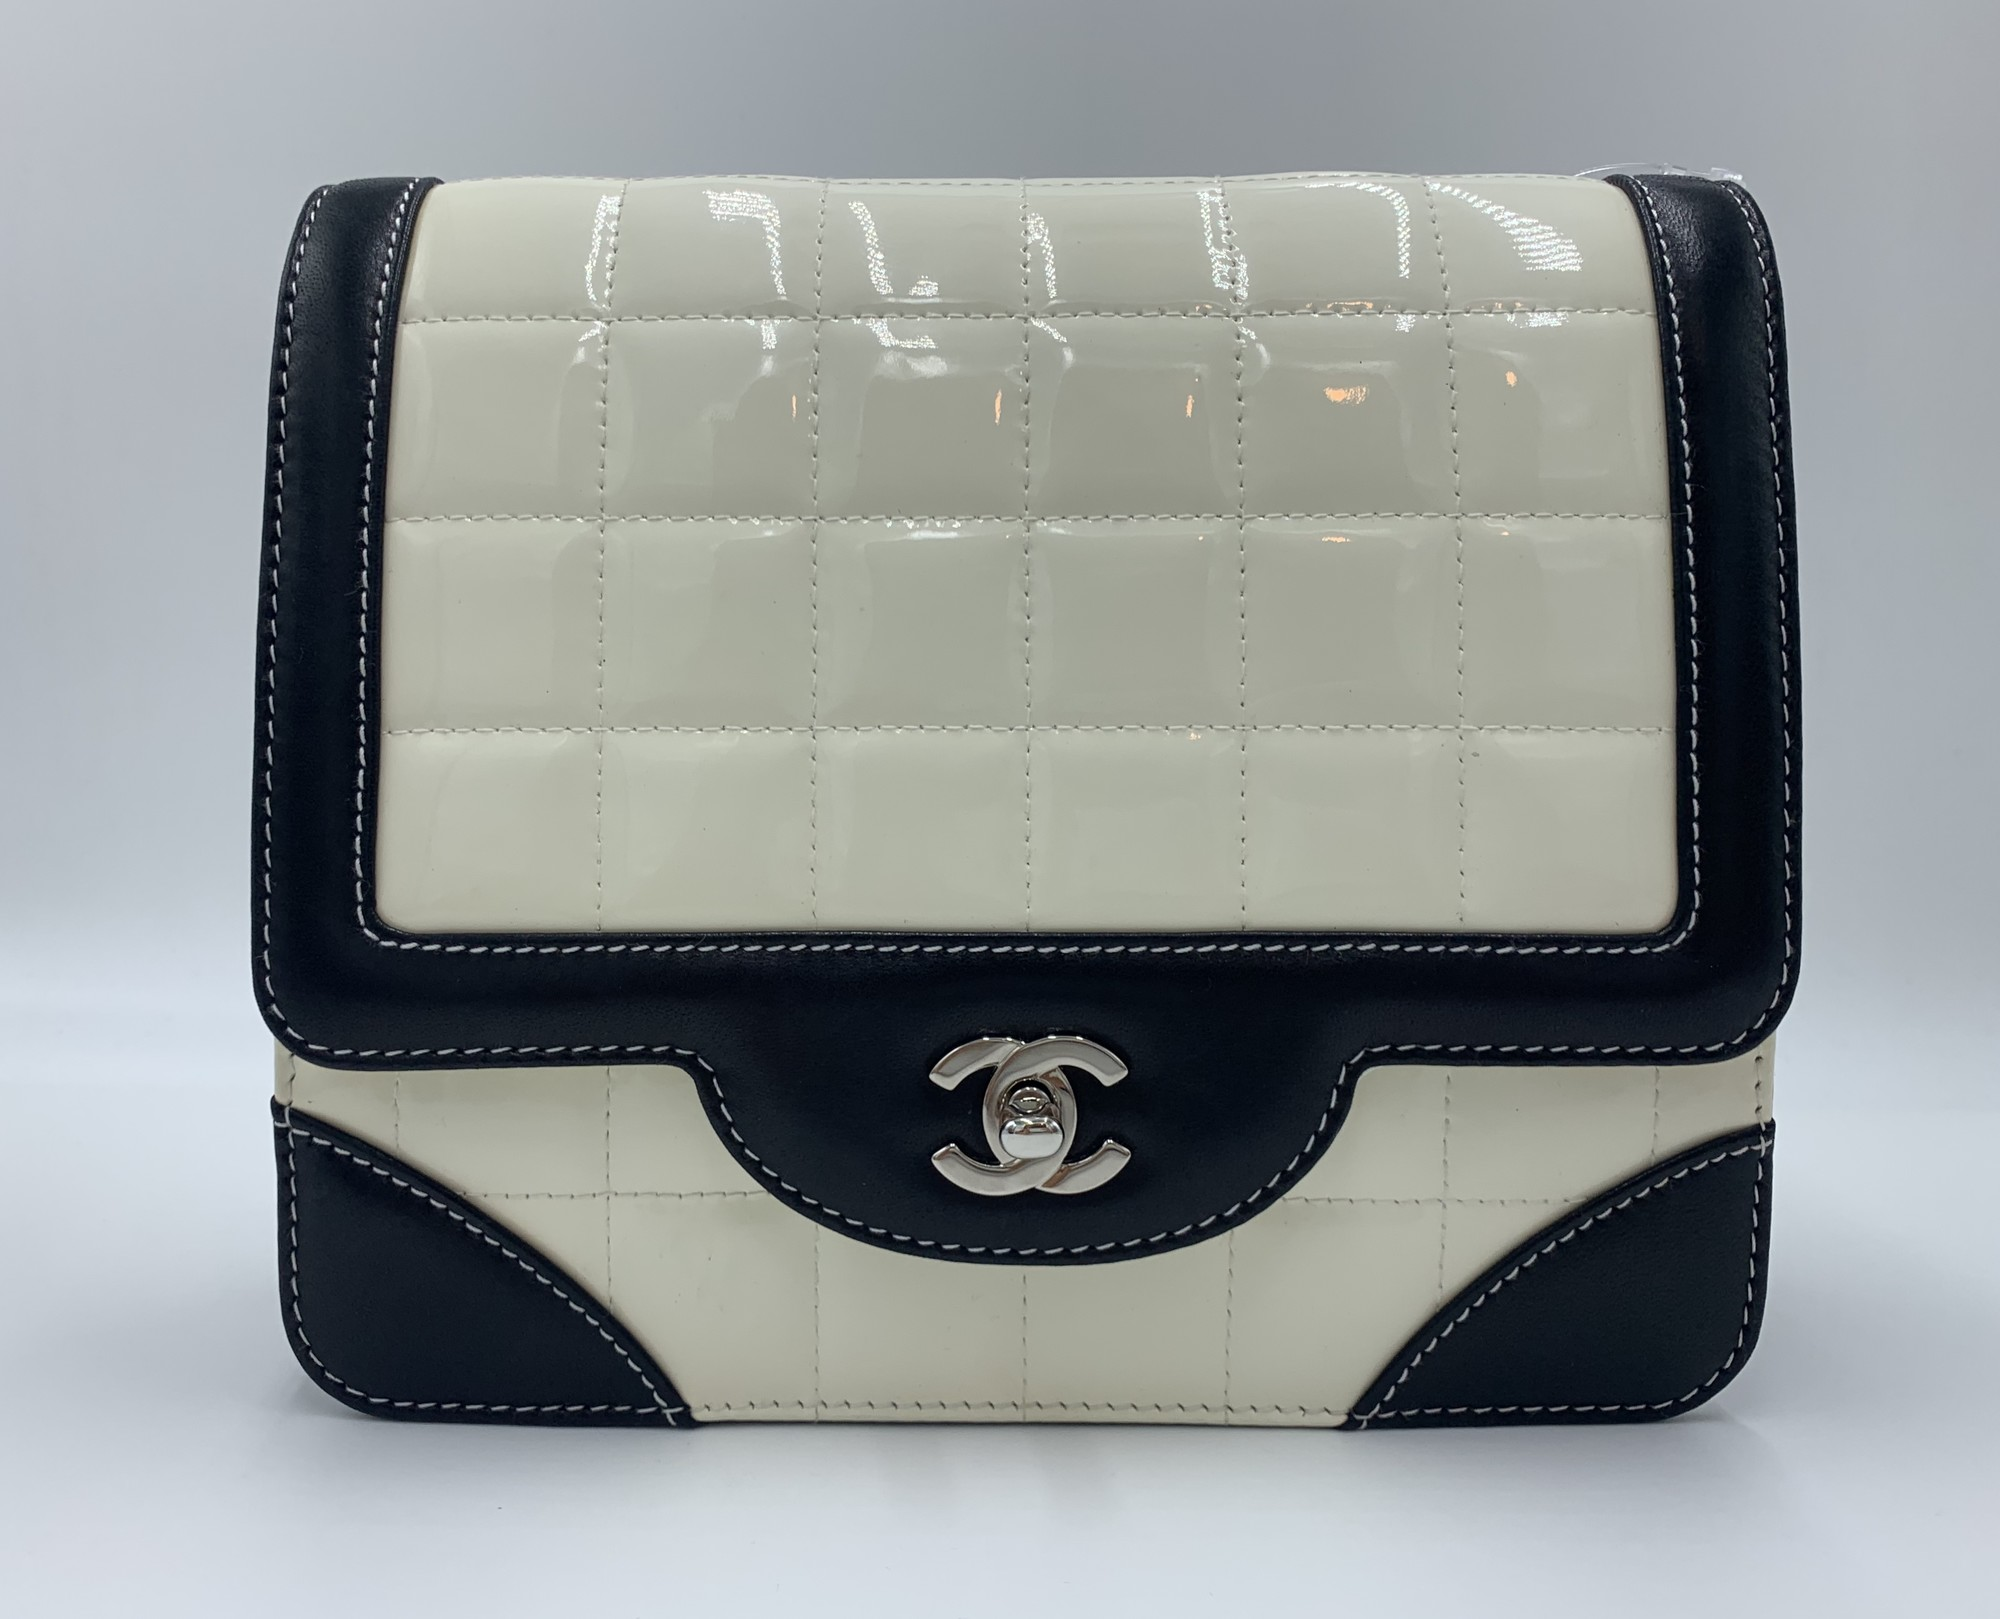 "Chanel Patent Quilted Fla, Wht.Blk, Size: S<br /> <br /> Condition: EXCELLENT. Tiny pen mark on back<br /> <br /> 8""W x 9""H x 3""D<br /> 9"" or 18"" sliding chain strap"